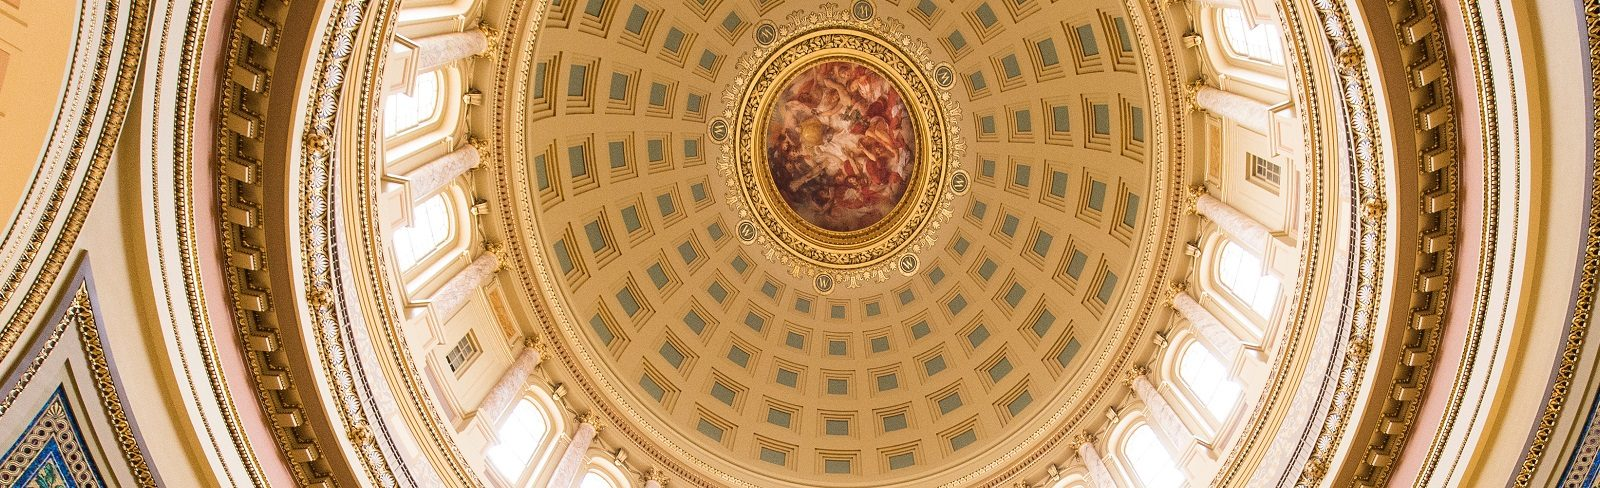 The ornate ceiling of the Wisconsin State Capitol is pictured during Posters in the Rotunda on April 22, 2015. The event provides students and faculty advisors from across the UW System with the opportunity to share their research findings with Wisconsin legislators, state leaders, UW alumni and members of the public. (Photo by Jeff Miller/UW-Madison)